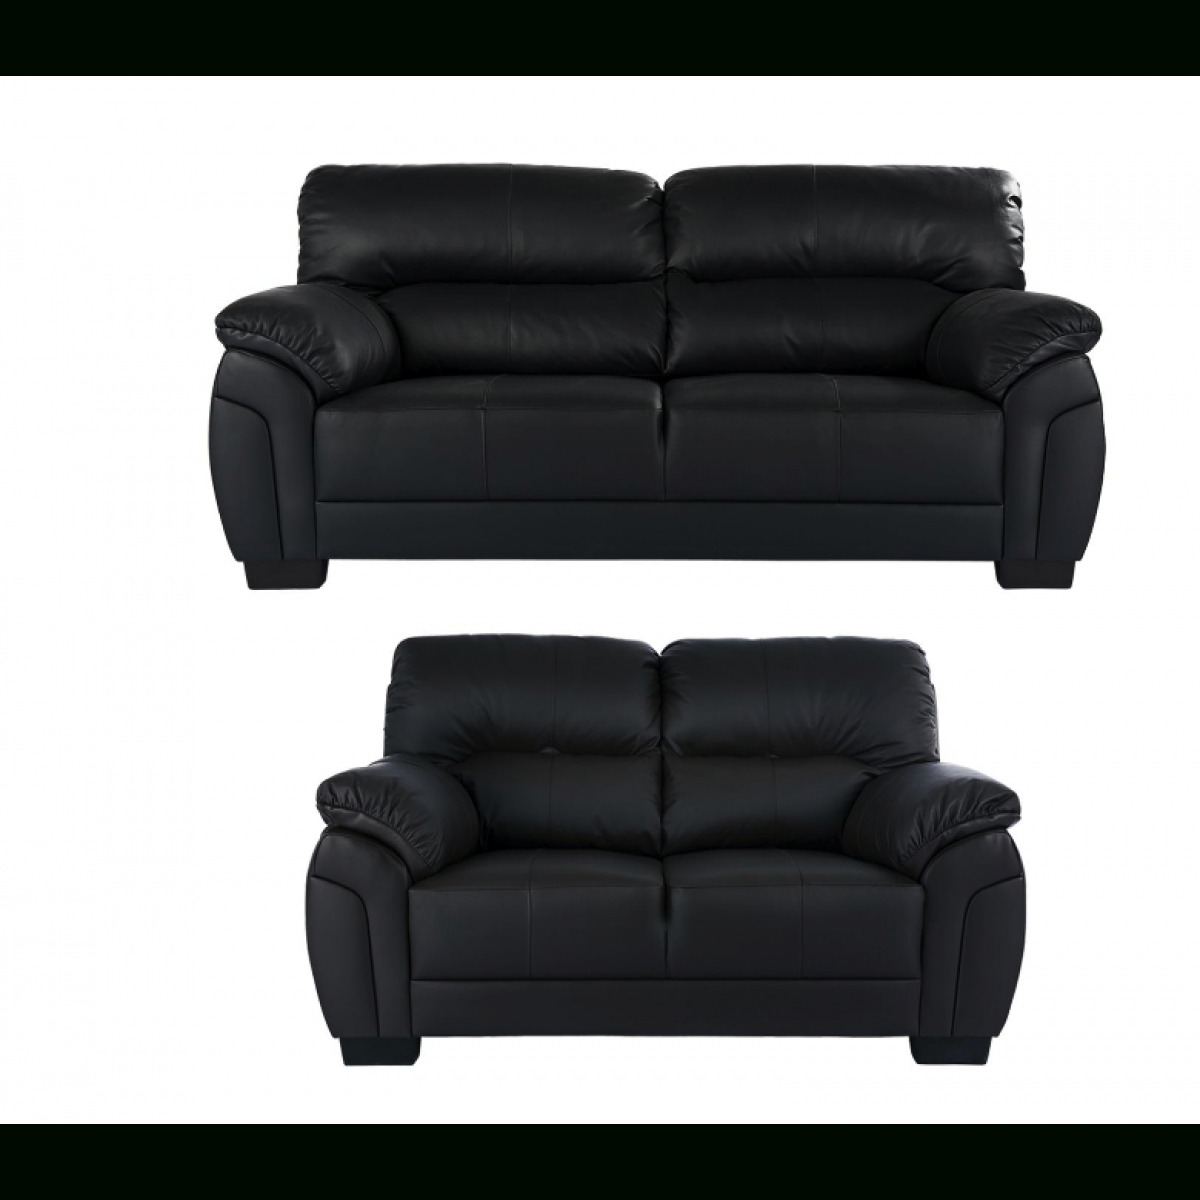 Ancona 3 Seater Plus 2 Seater Sofa Set Black – Furnico Village Regarding Black 2 Seater Sofas (View 10 of 20)